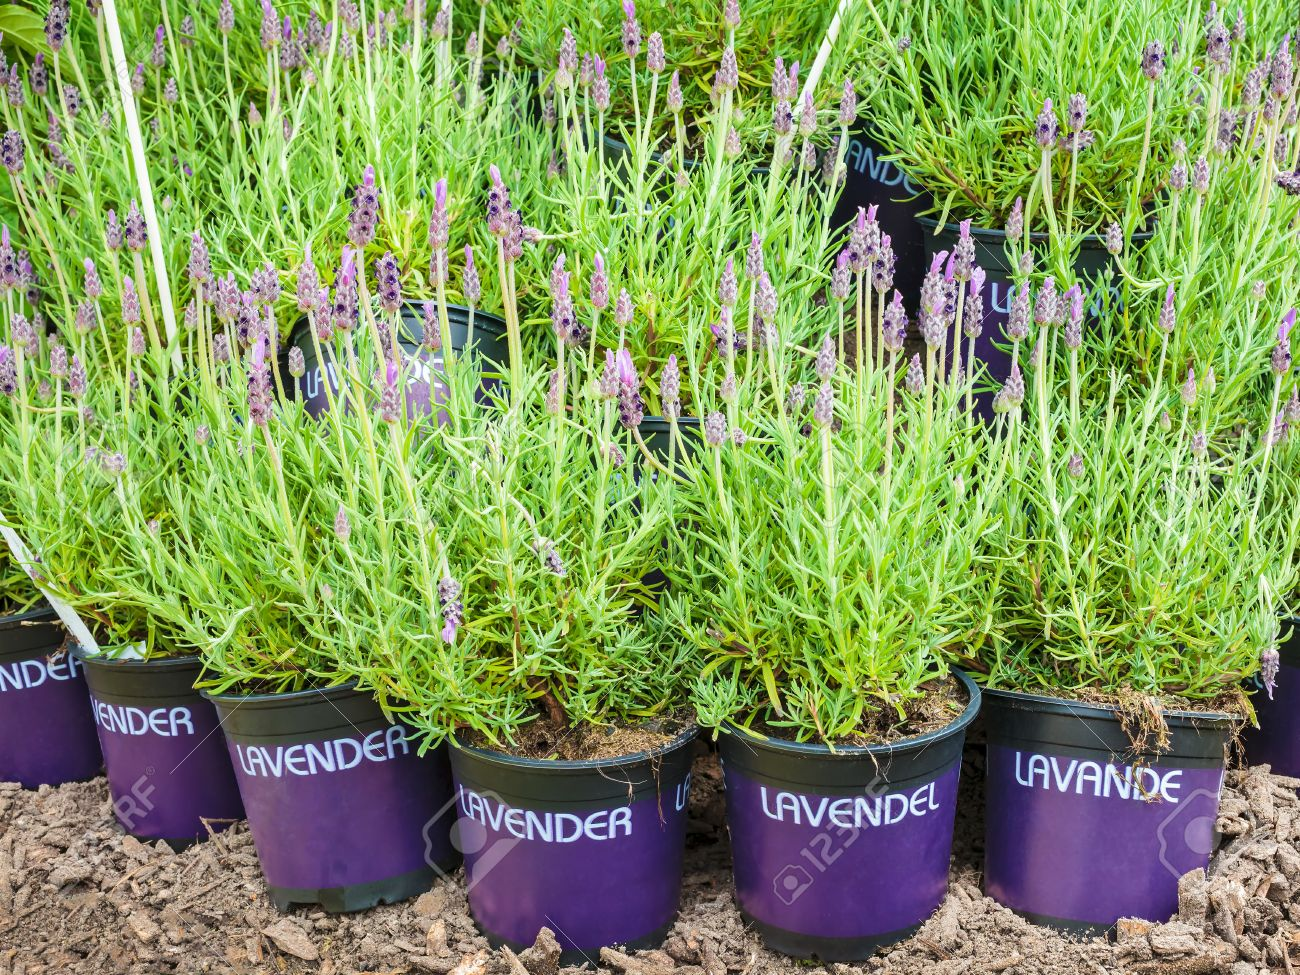 Potted Lavender Plants On Soil With The Text Lavender In Different ...